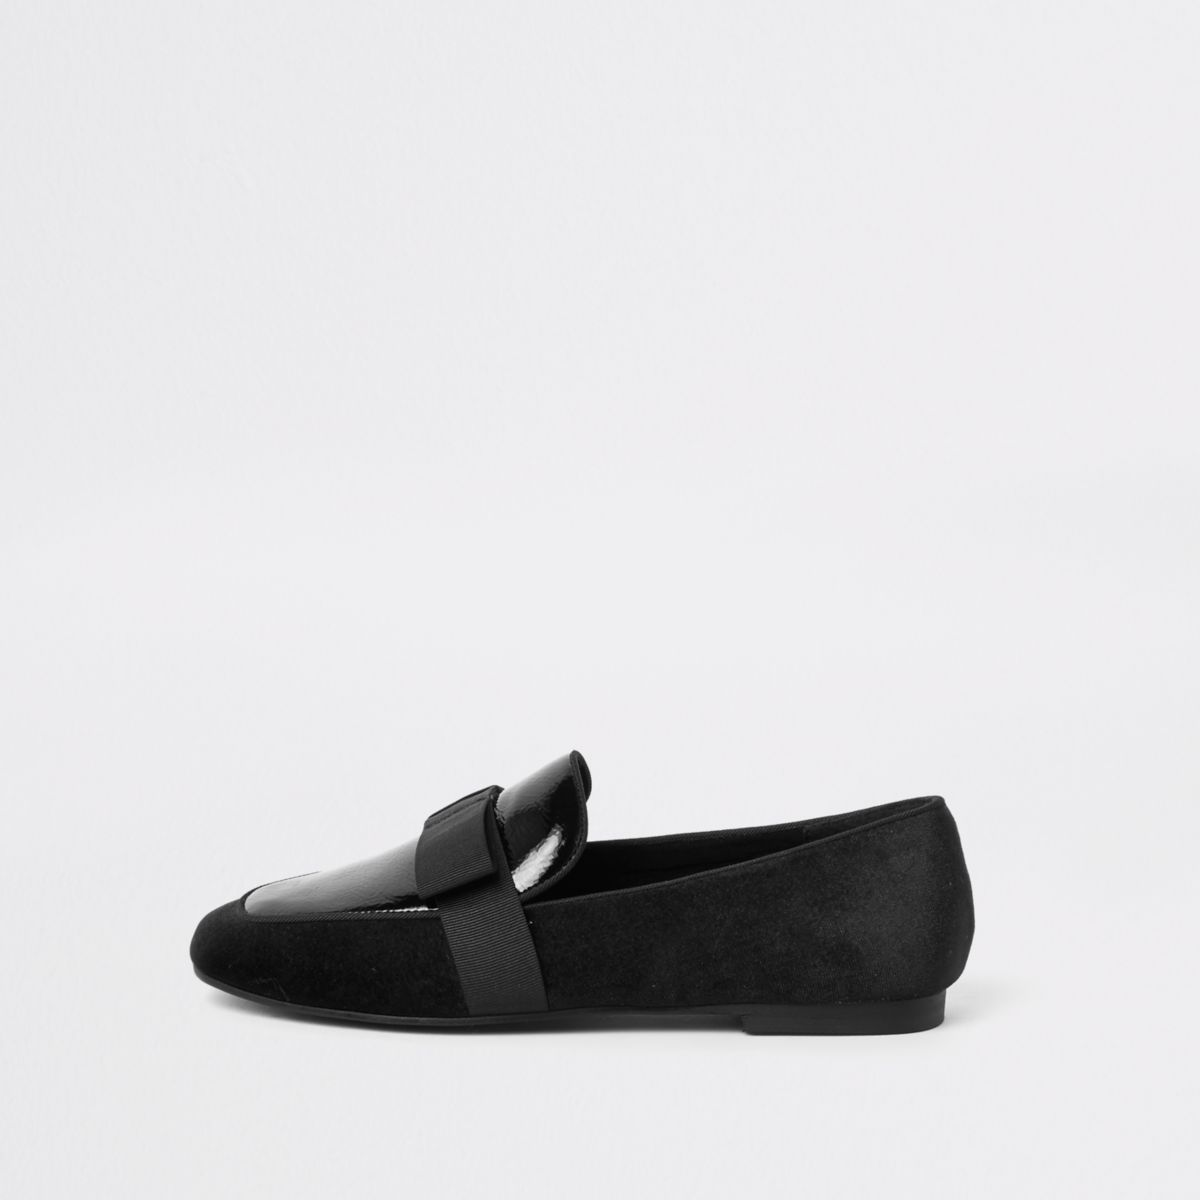 Black bow square toe loafers